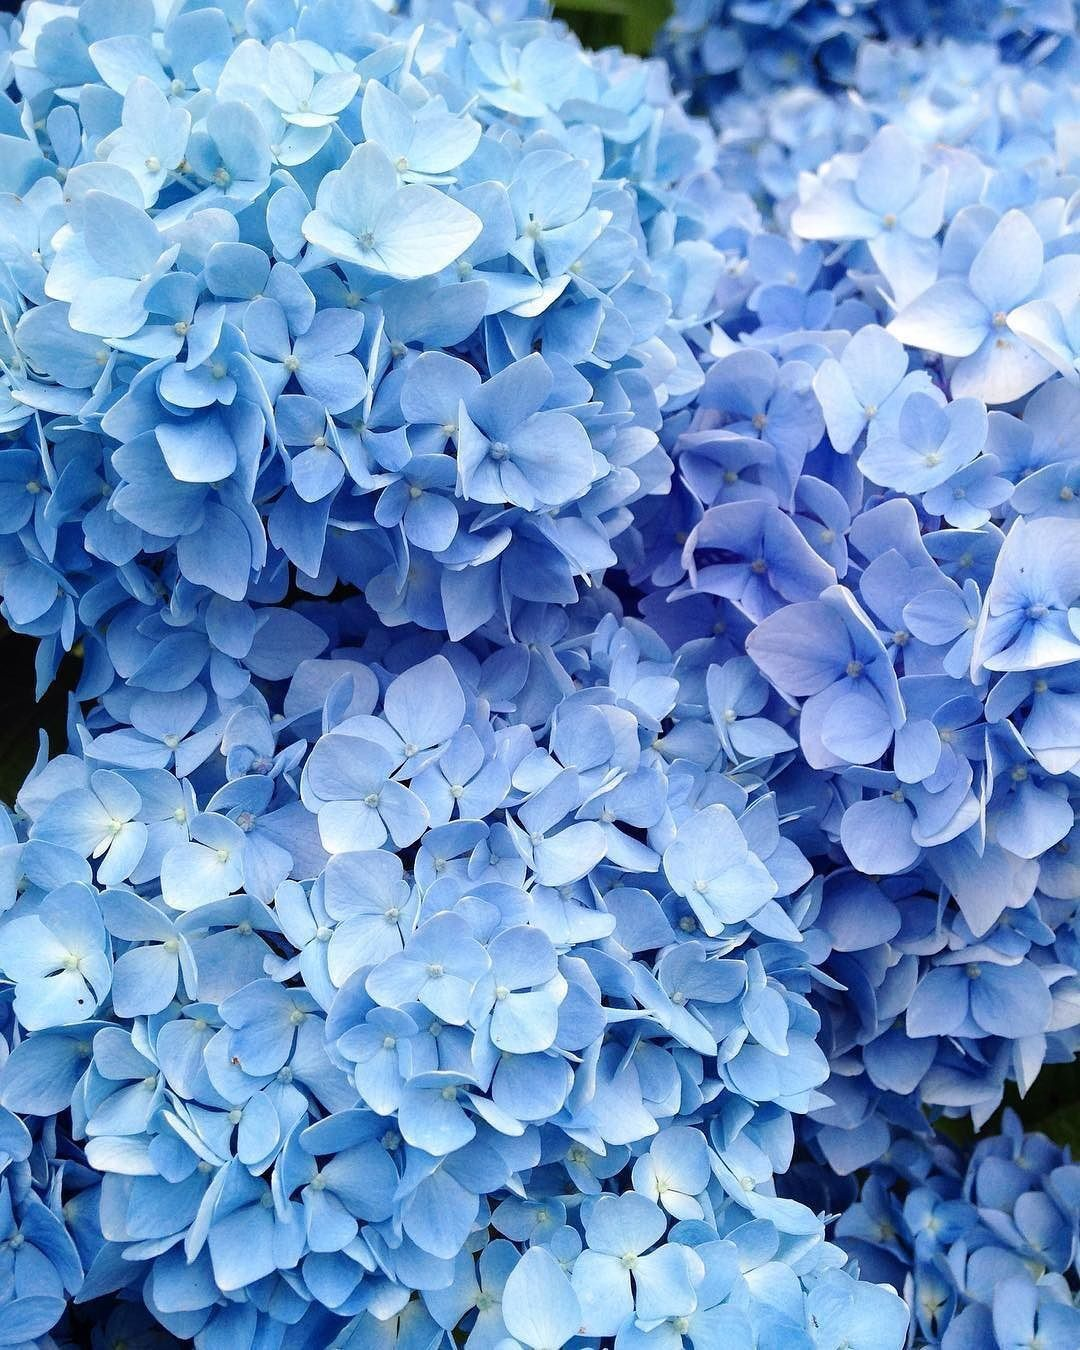 Stop and smell the hydrangeas DHCBlue via